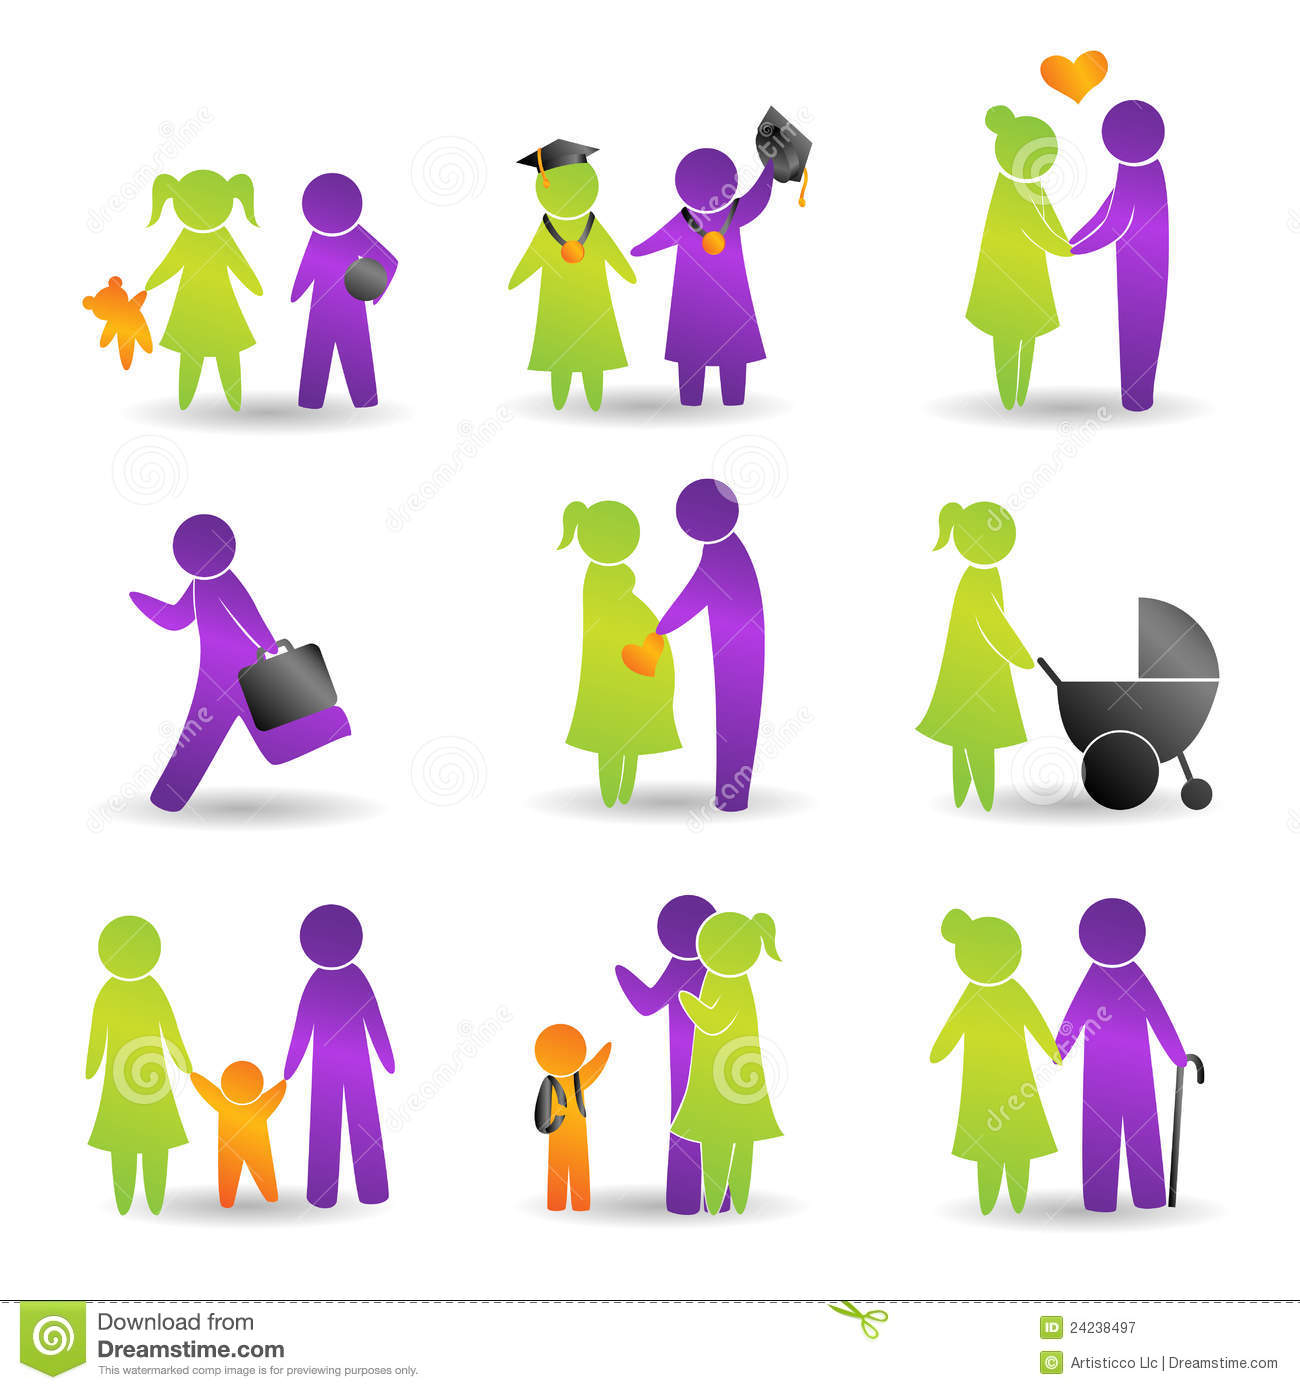 Life Events Icons Royalty Free Stock Photography - Image: 24238497